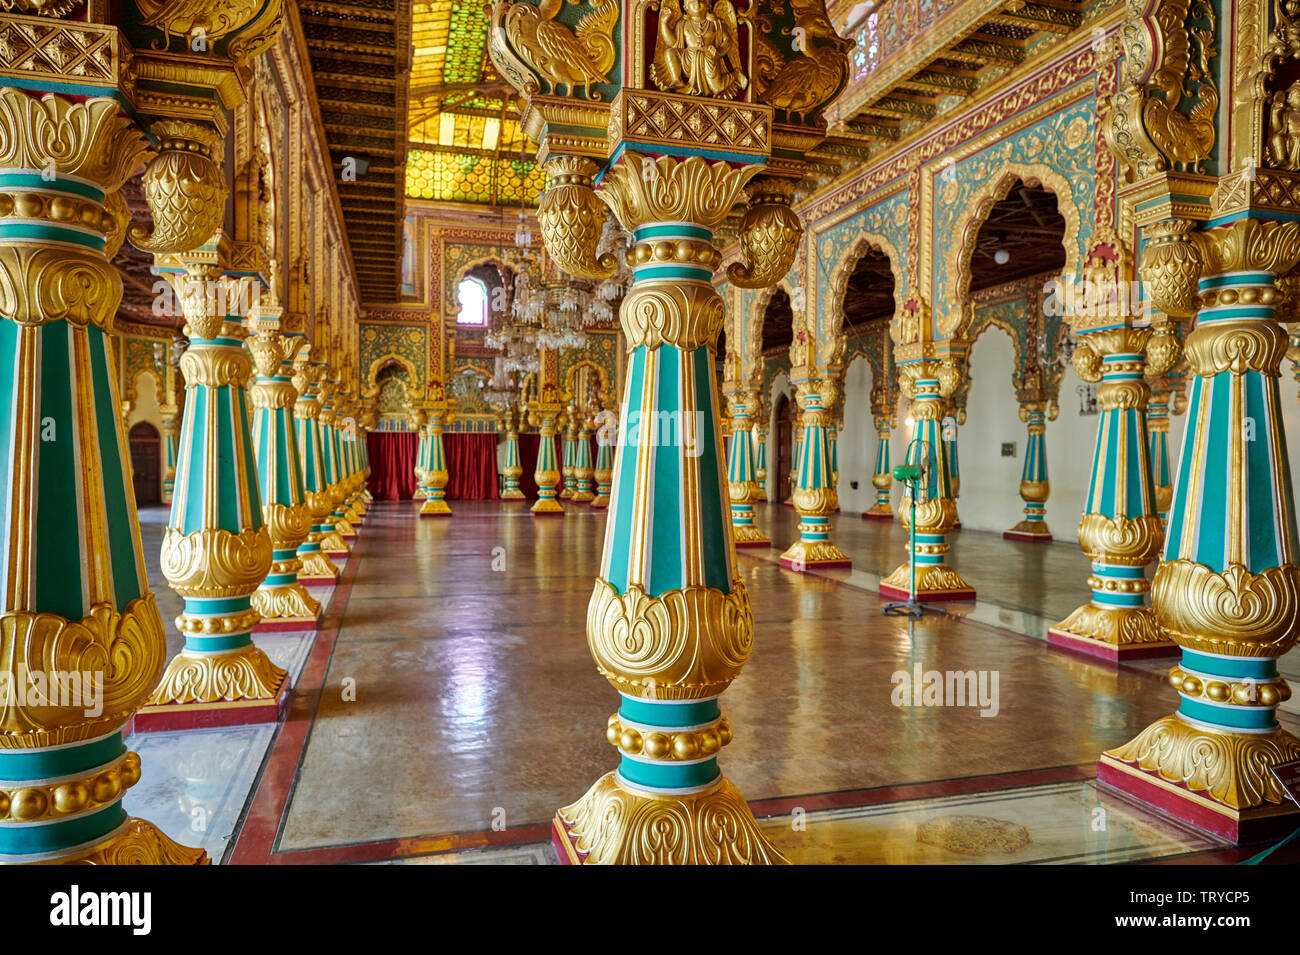 colorful columns in Private Durbar Hall, interior shot of Mysore Palace or ambavilas palace, Mysore, Hassan, Karnataka, India - Stock Image